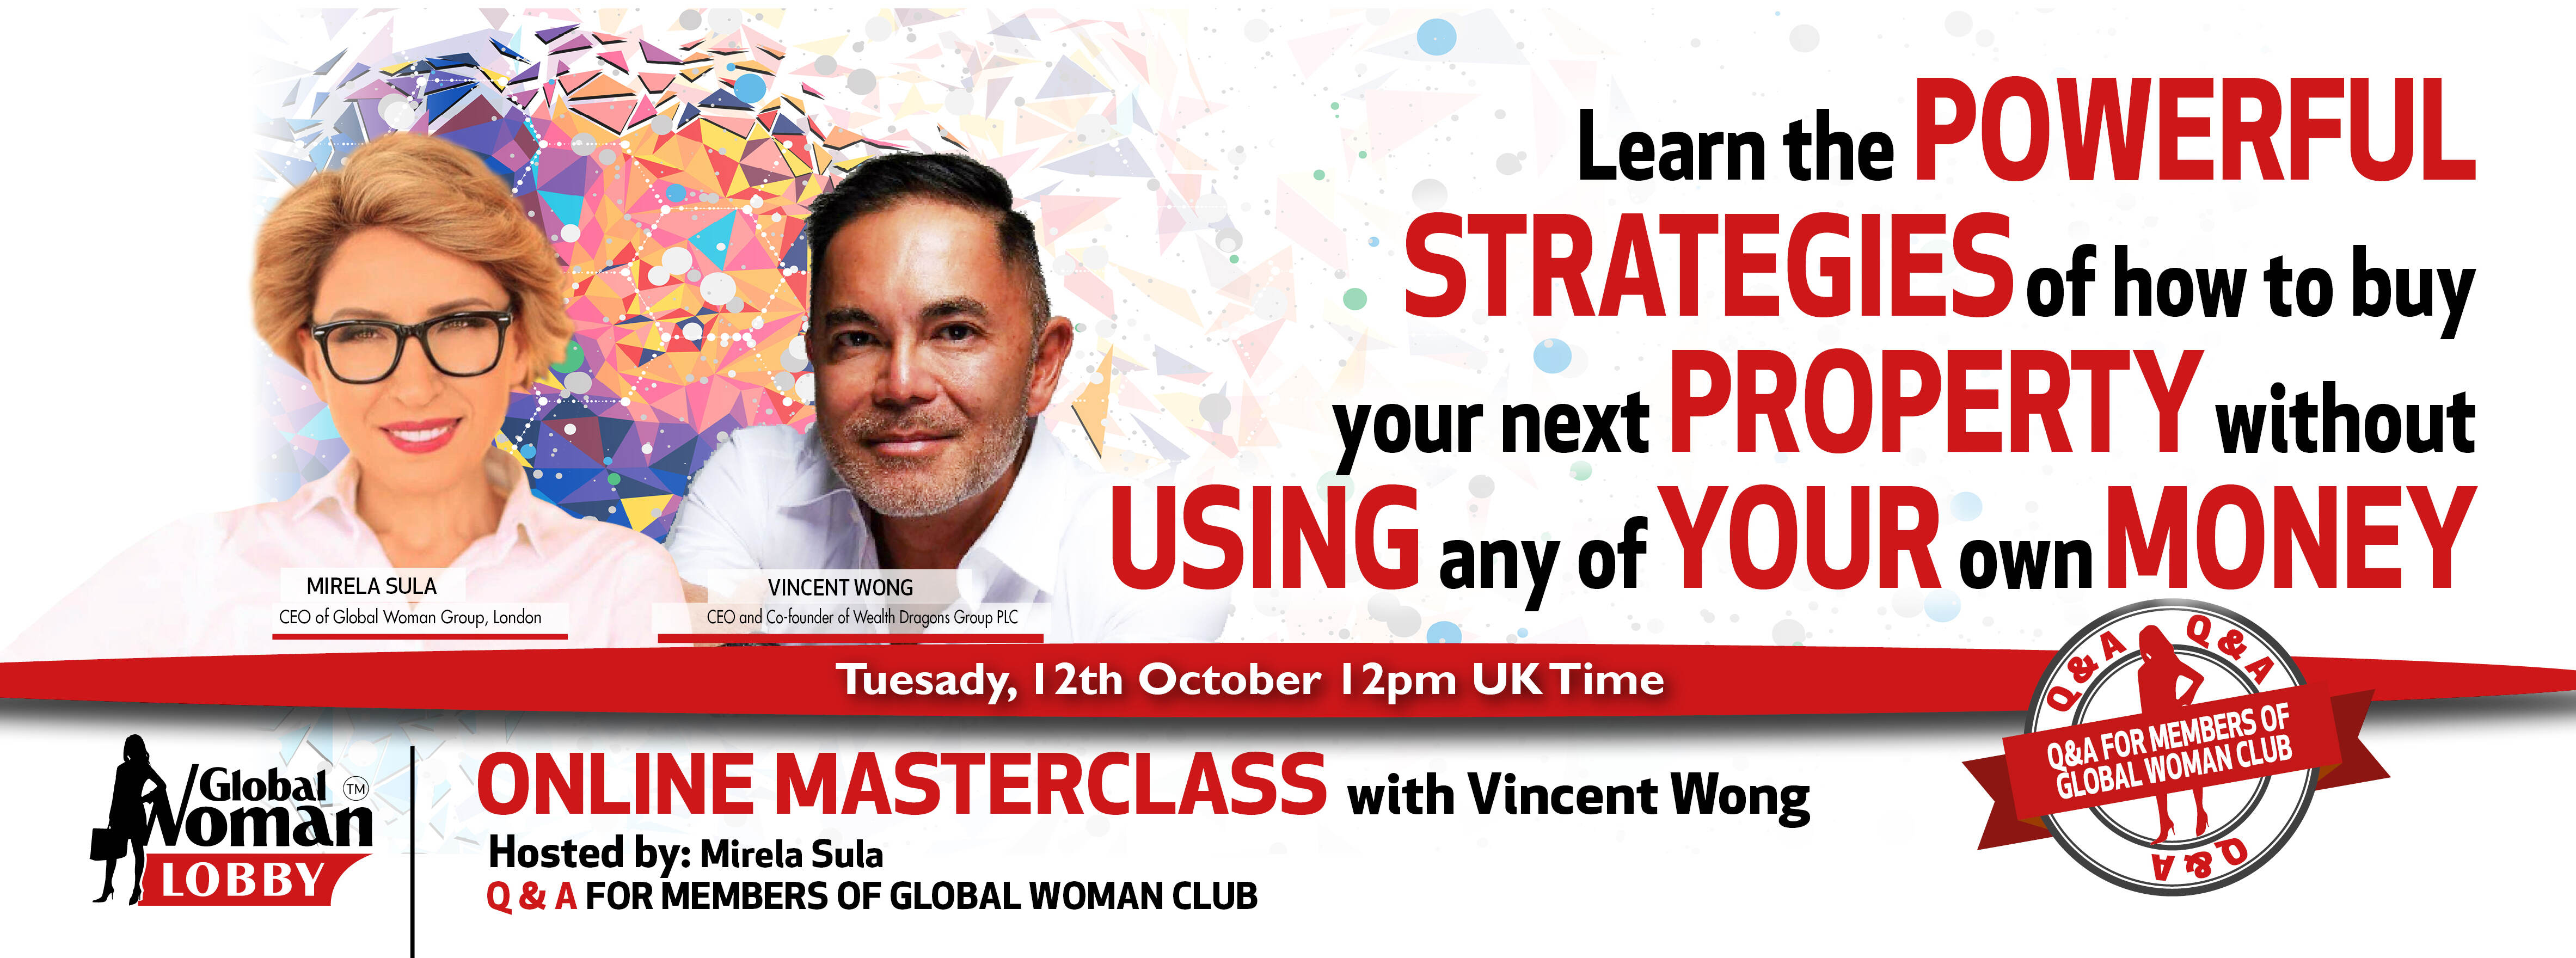 Online Masterclass with Vincent Wong